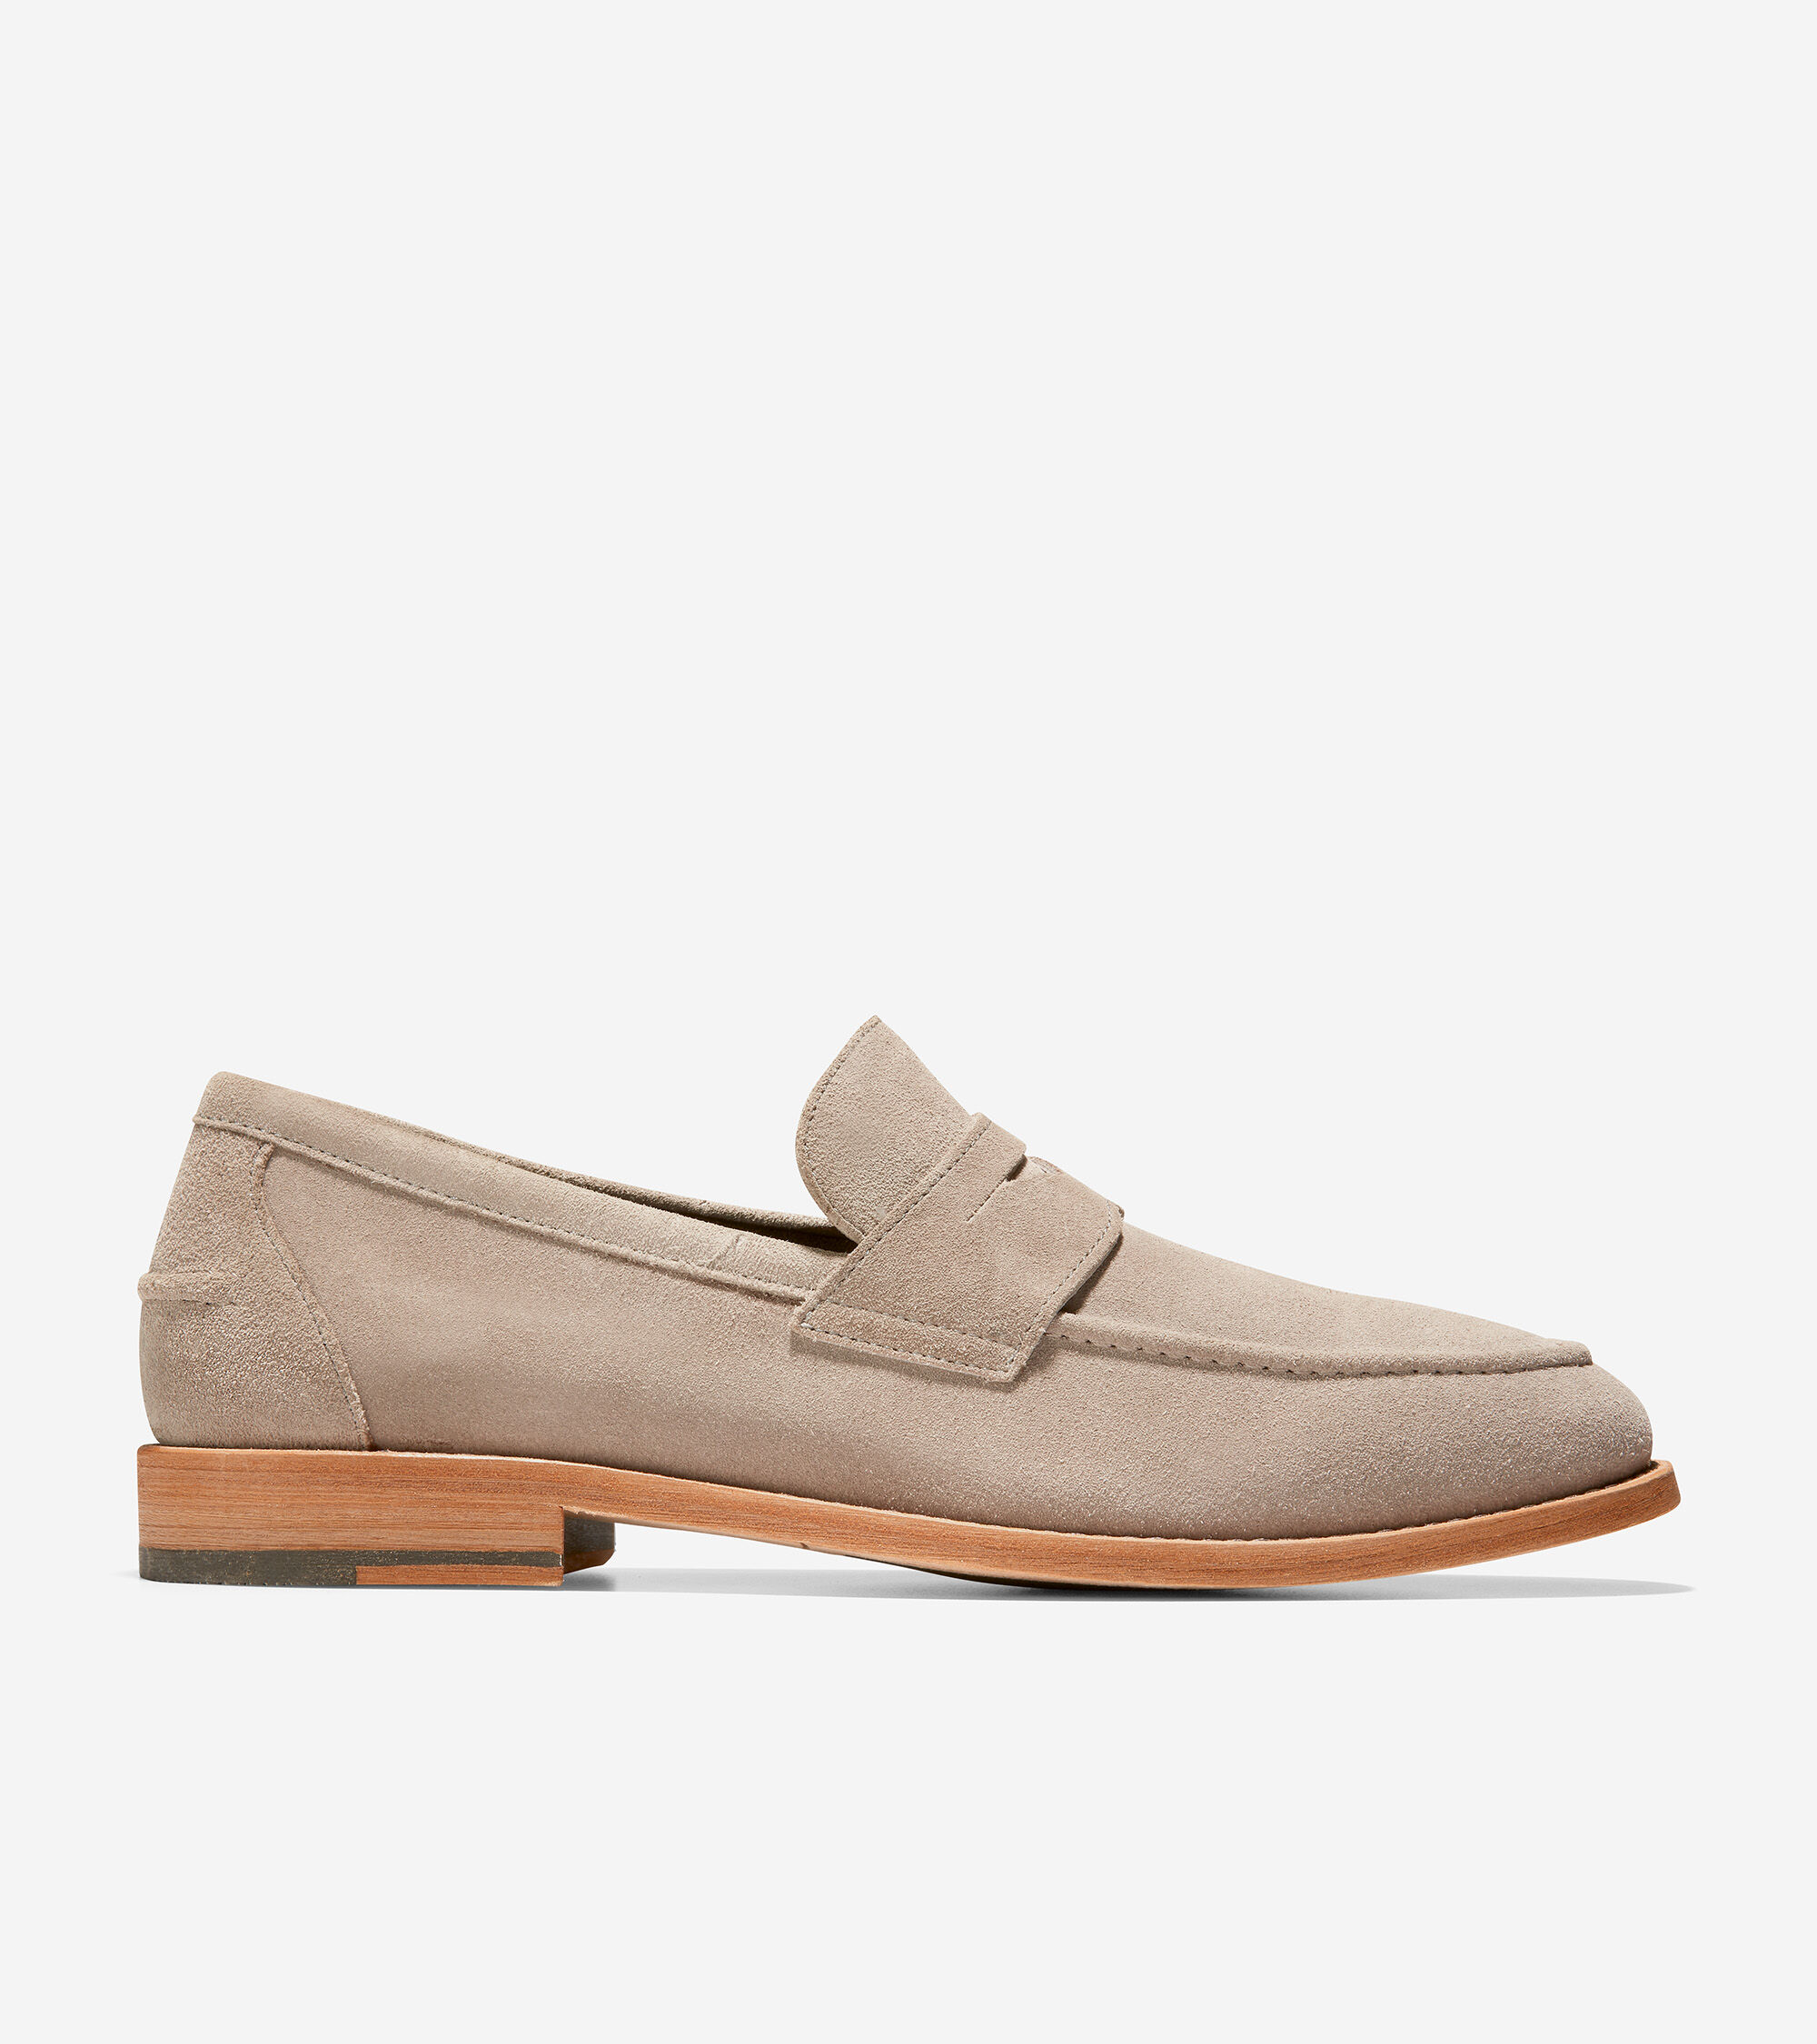 Suede penny loafer. Molded sockliner for comfort and fit. Multi-directional Grand Flex pattern in the forefoot for flexibility. Injected GRANDFØAM for lightweight cushioning and energy return. TPU pods in heel and forefoot for durability and traction.